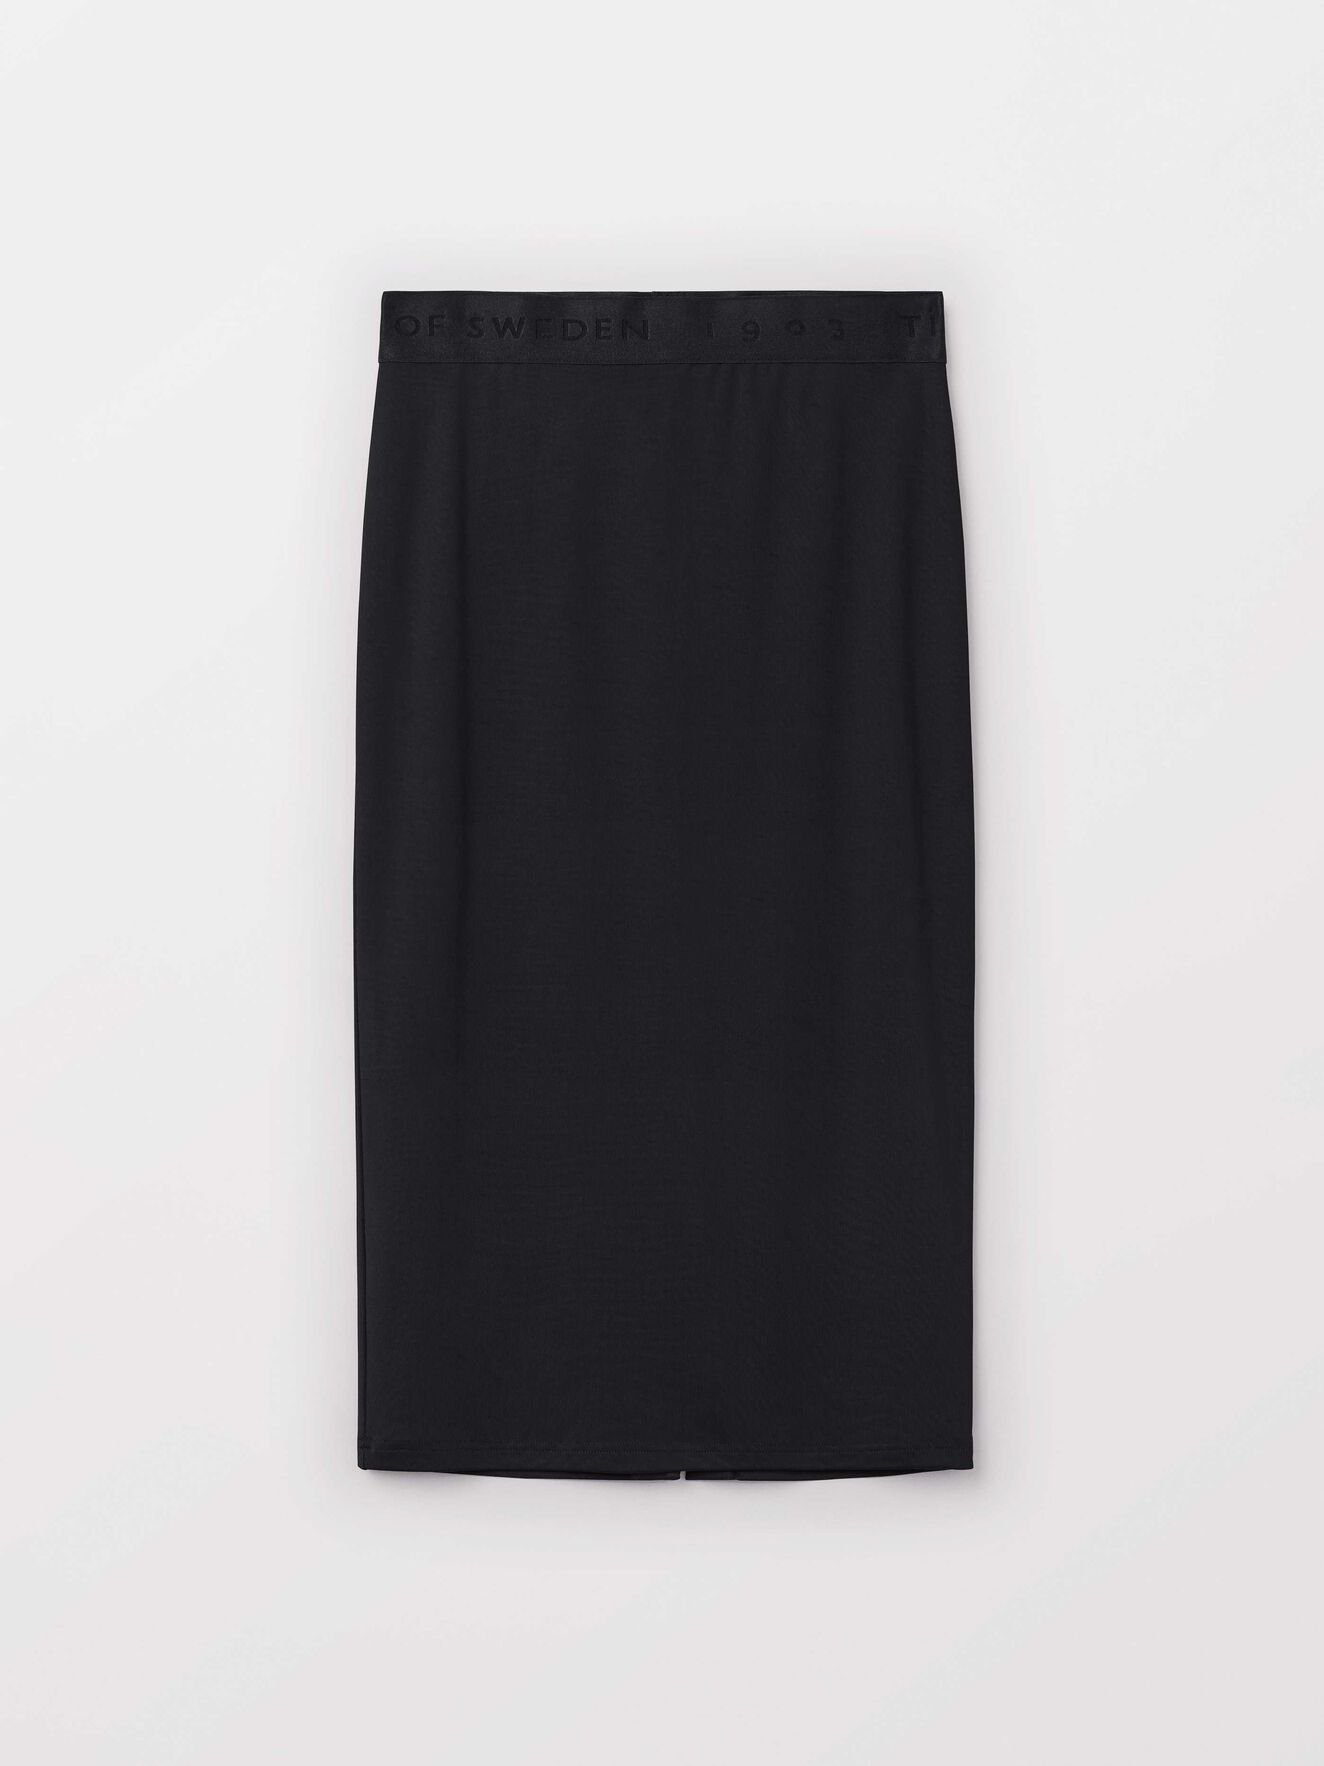 Jacelyn 2 Skirt in Black from Tiger of Sweden